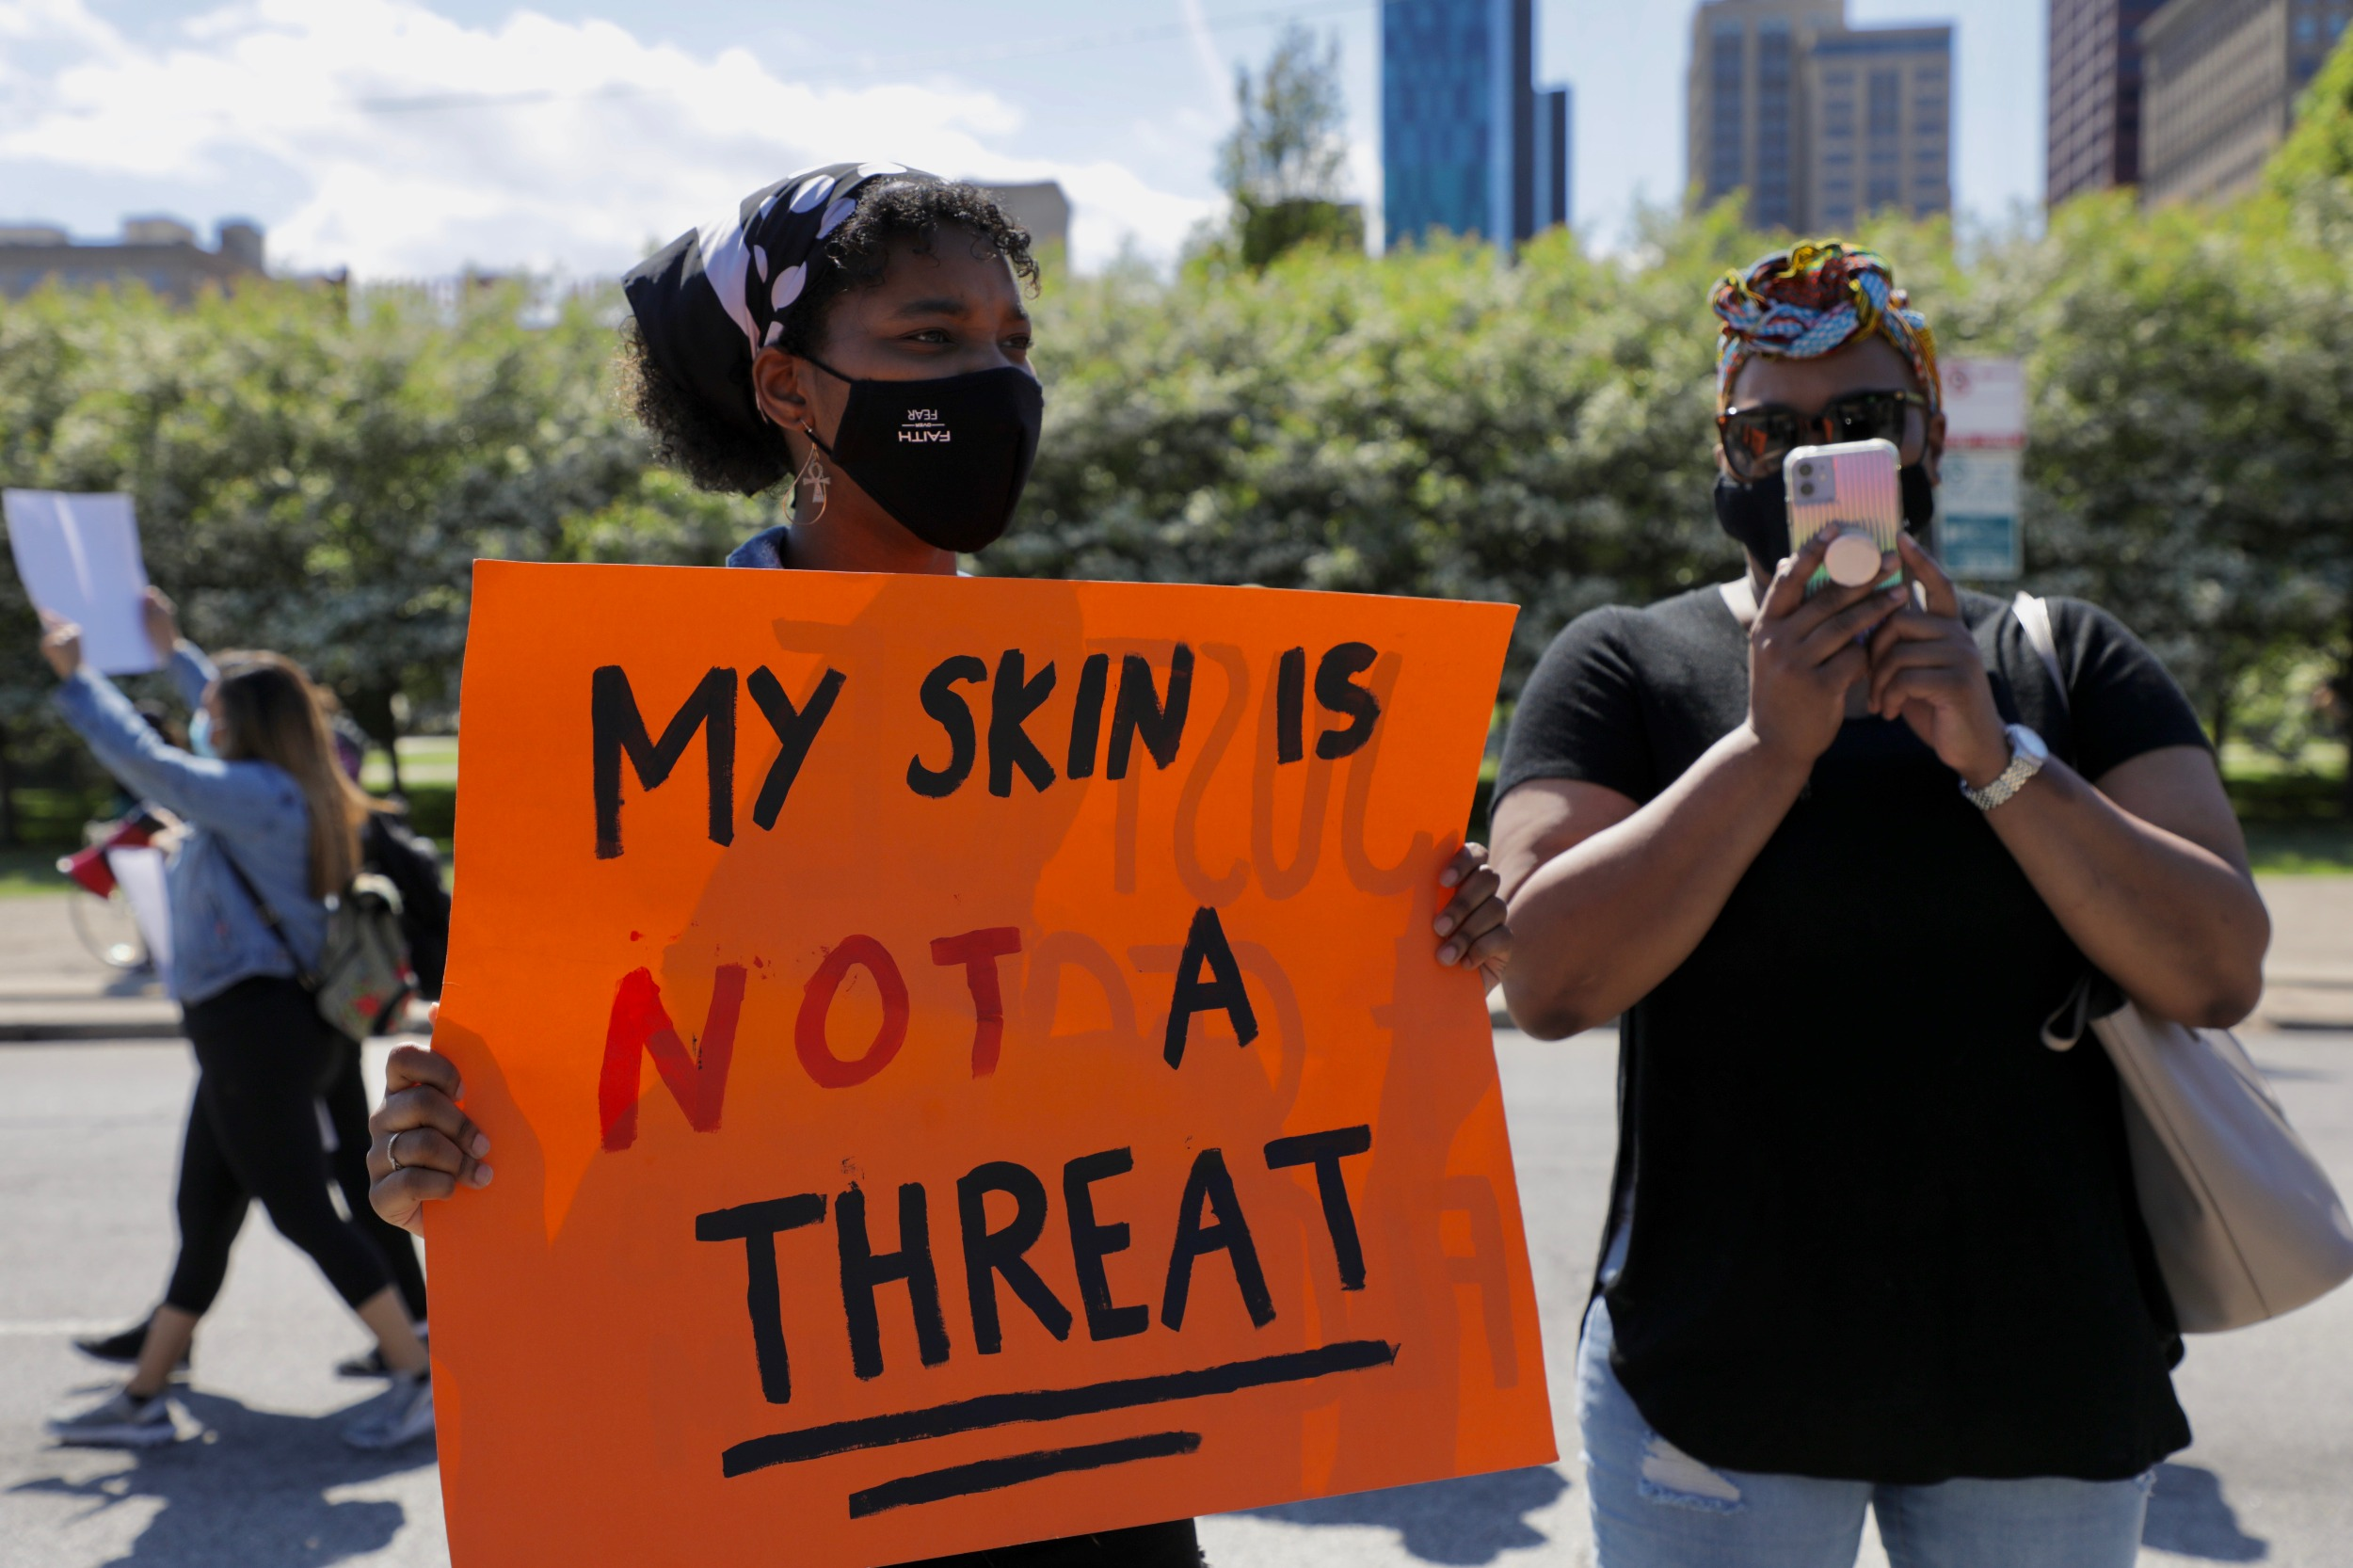 My skin is not a threat poster